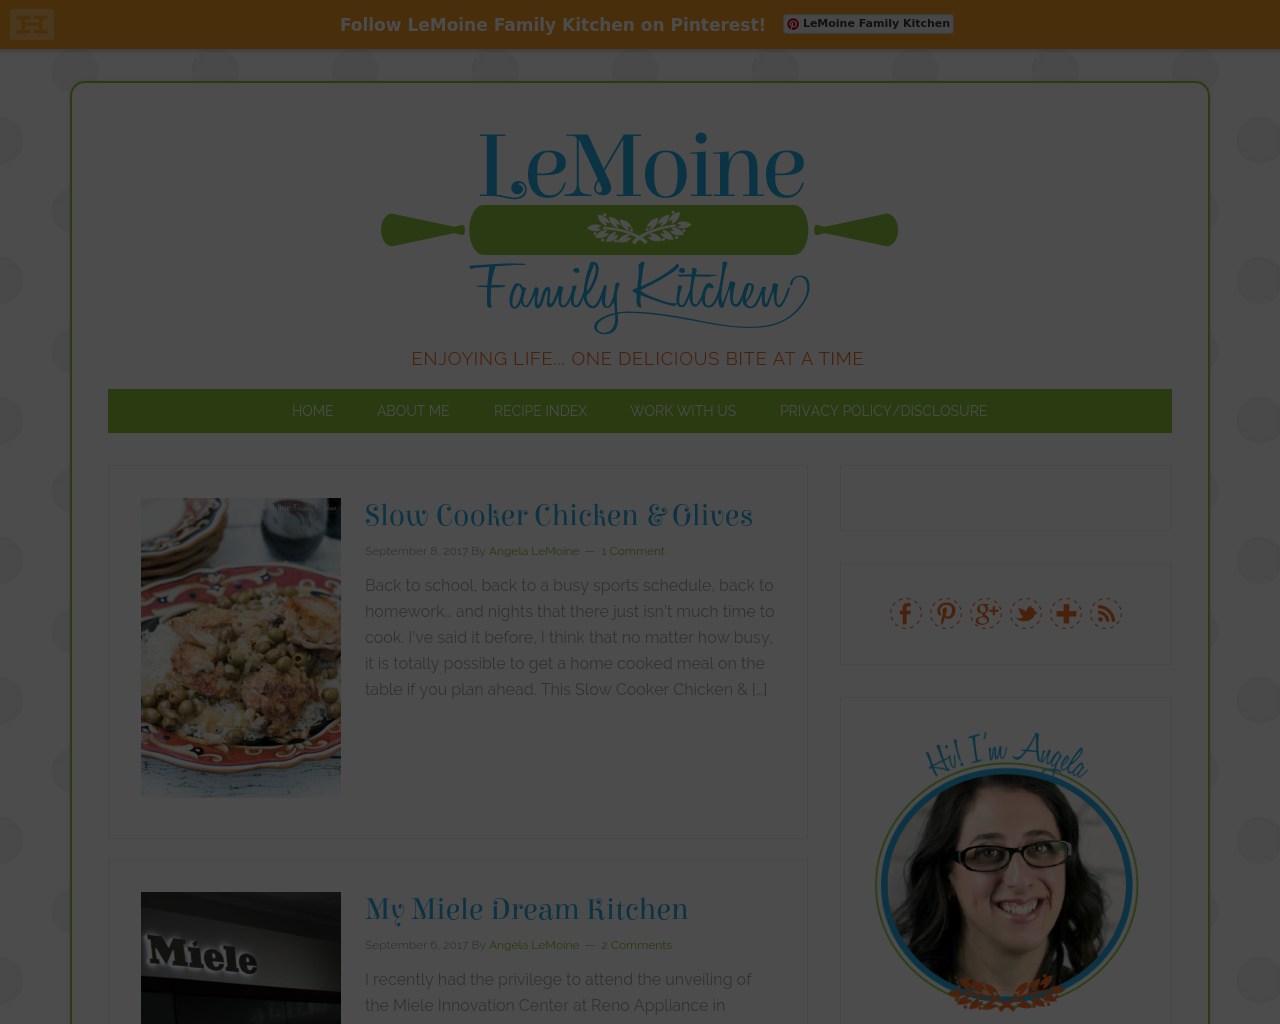 Le-Moine-Family-Kitchen-Advertising-Reviews-Pricing